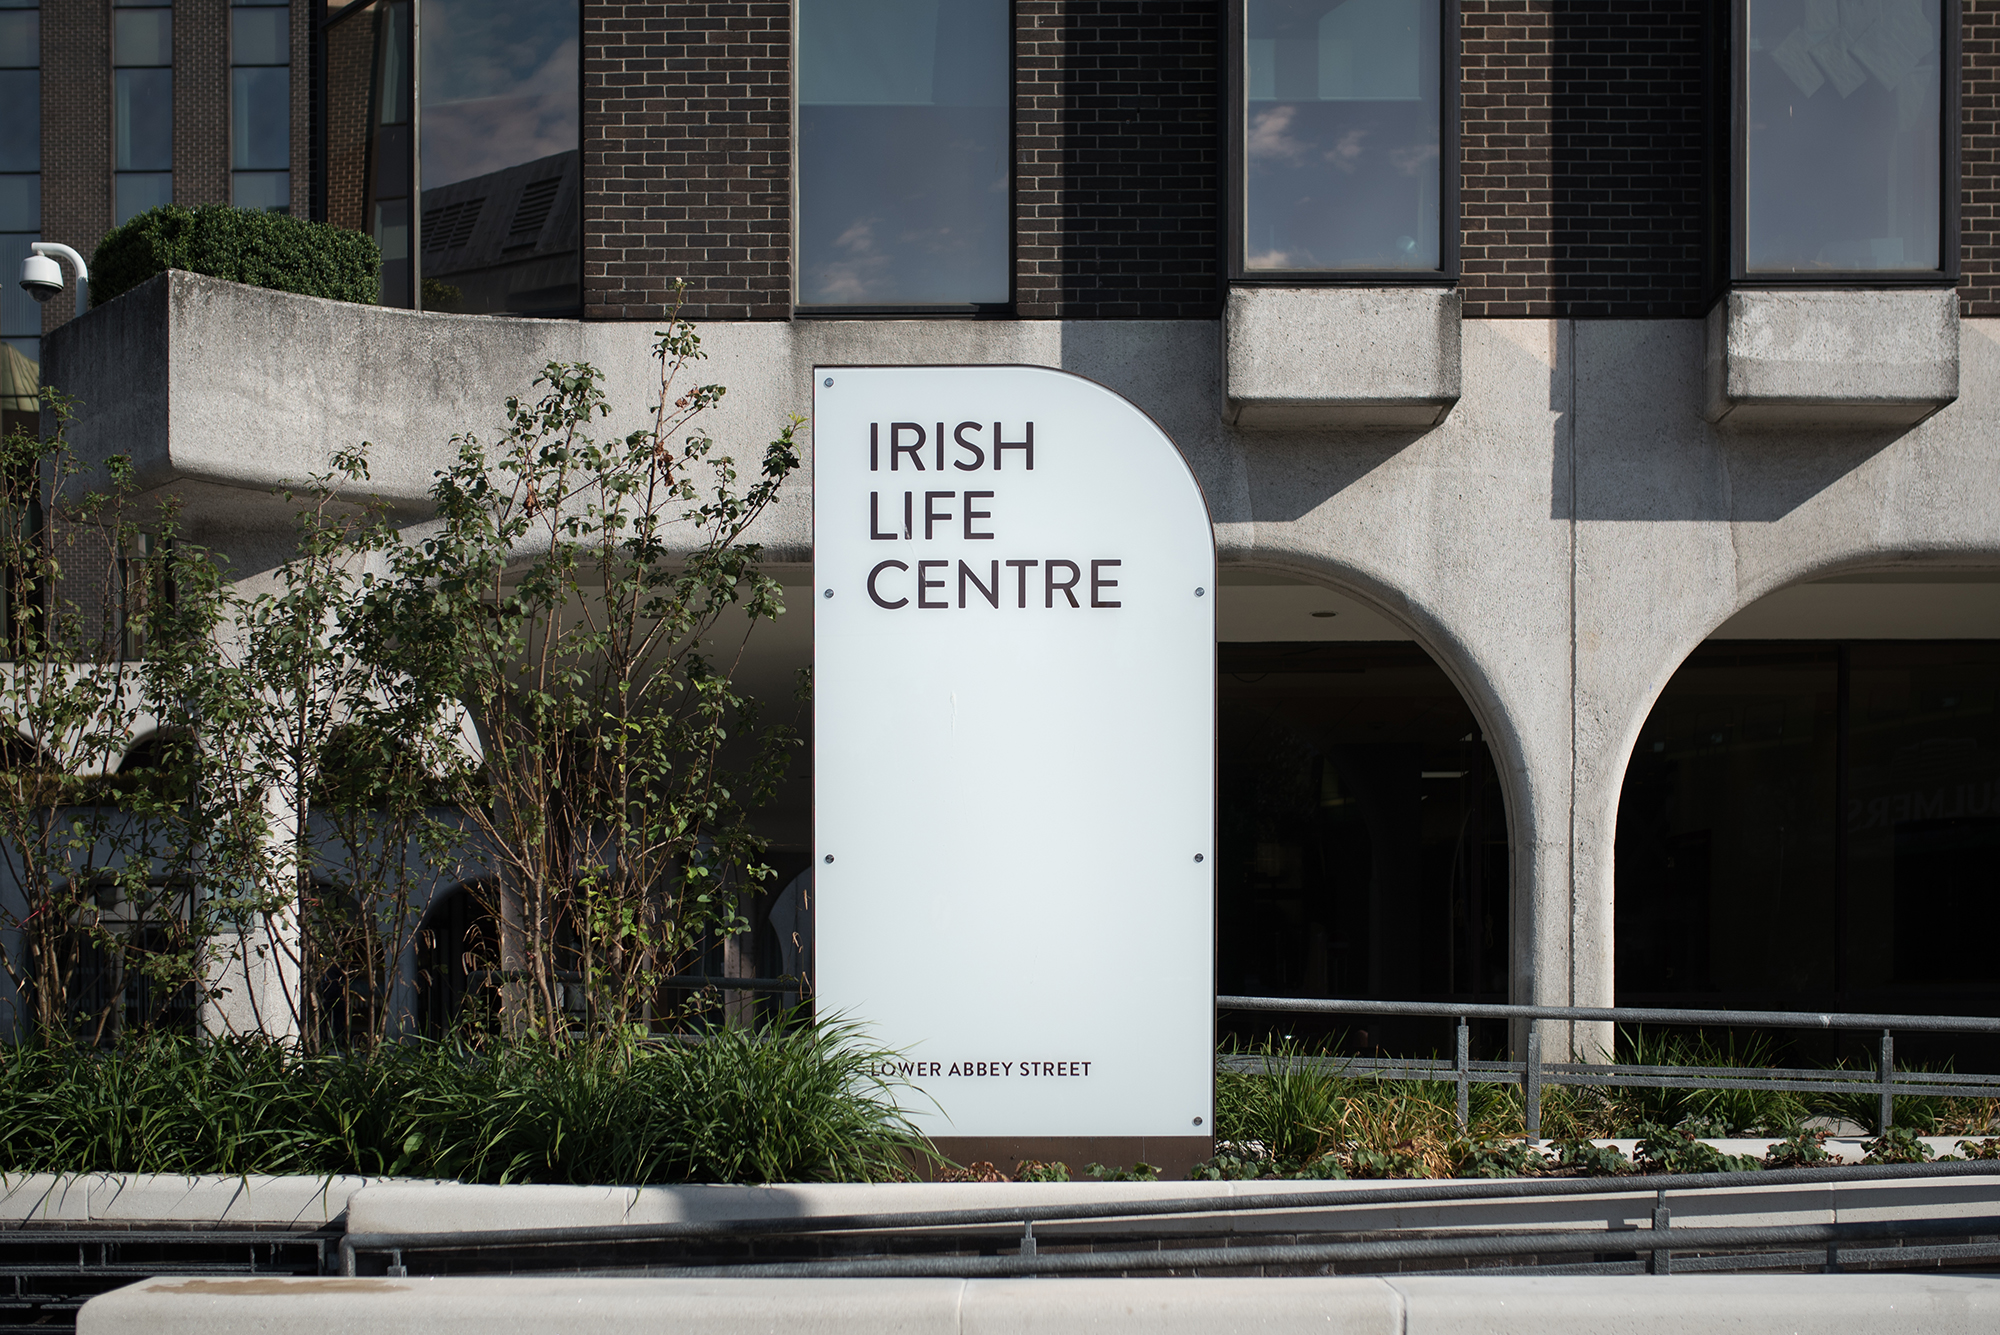 Cover image: Irish Life Centre Wayfinding and Signage